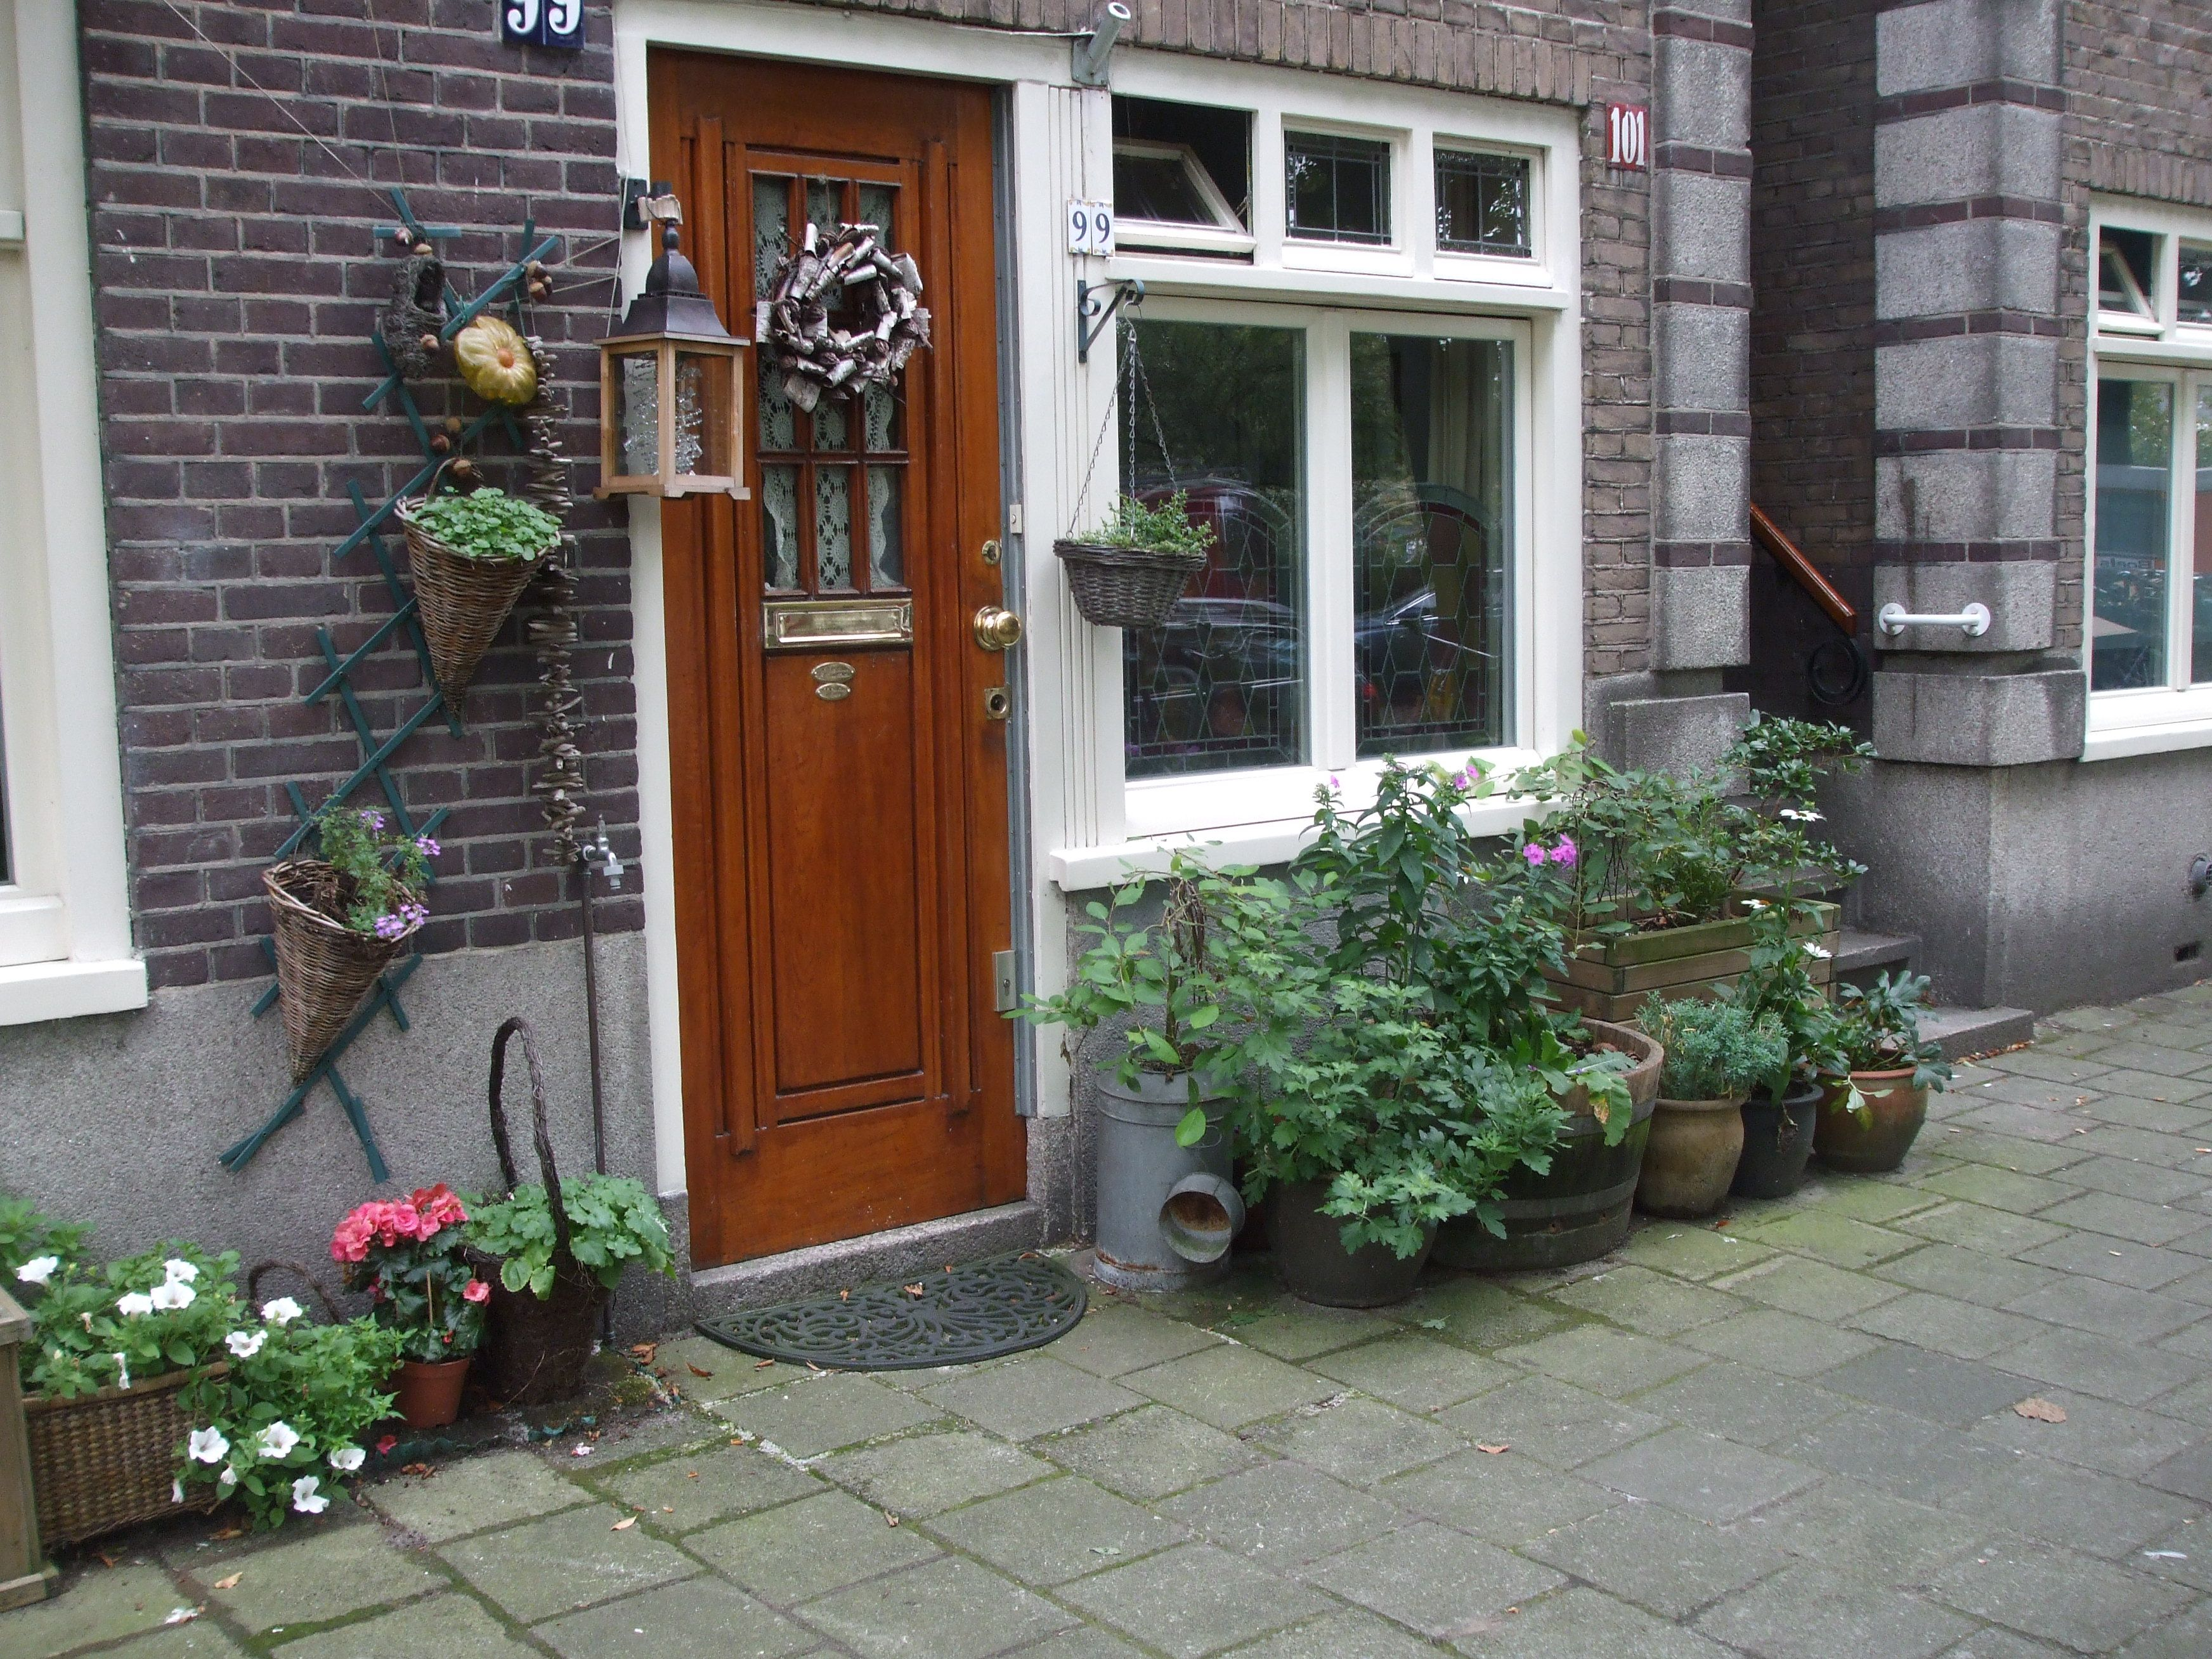 In front of a house plants and flowers in pots in the for Plants for front of house